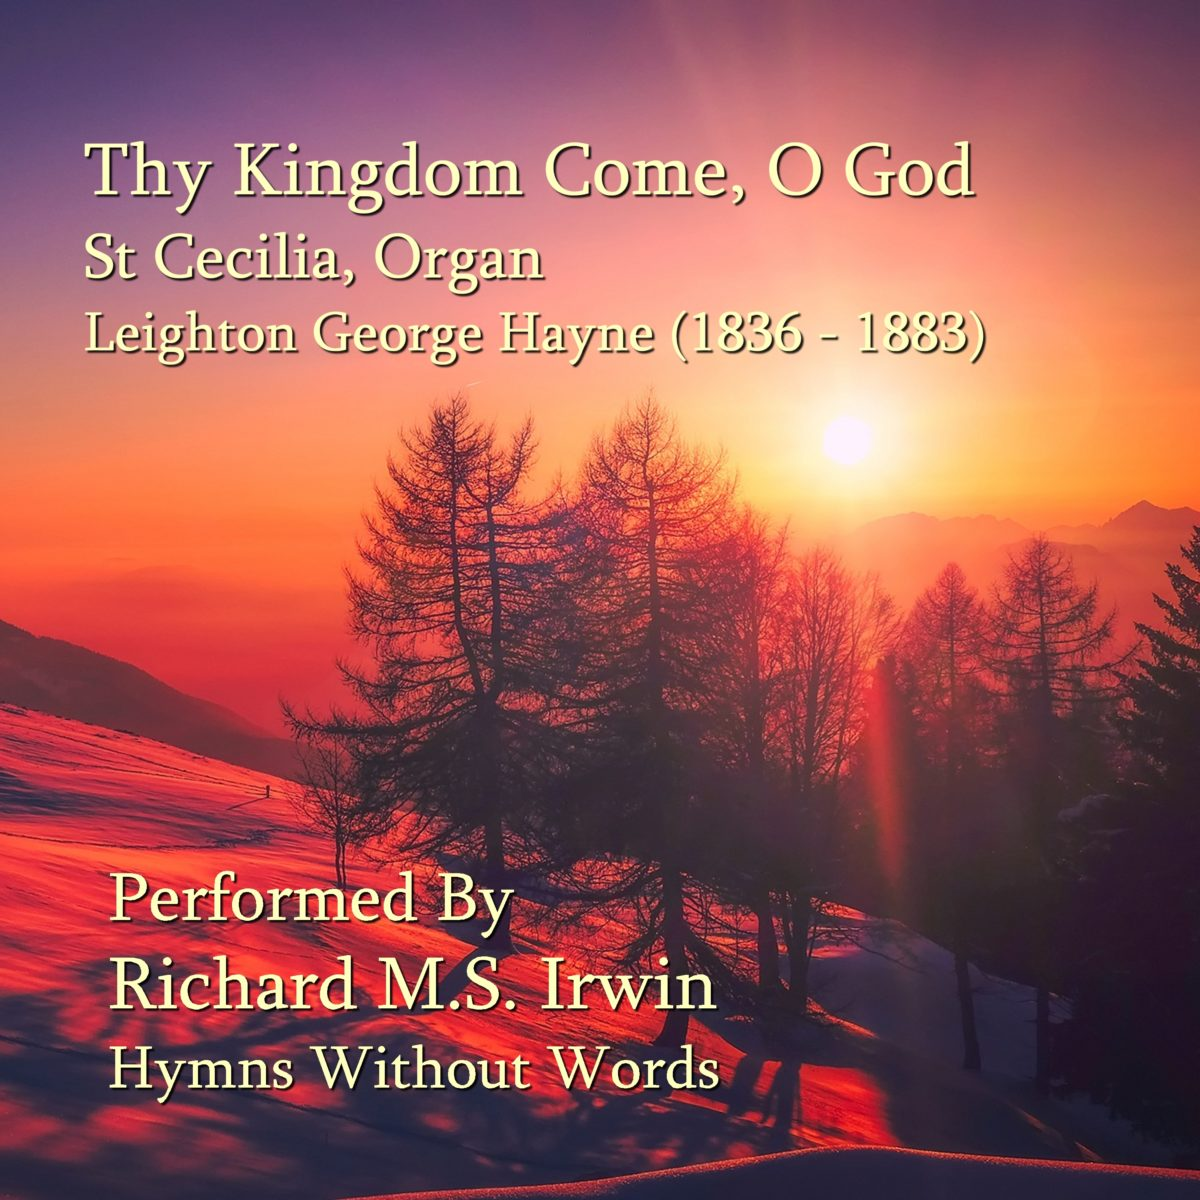 Thy Kingdom Come O God (St Cecilia – 6 Verse) – Organ